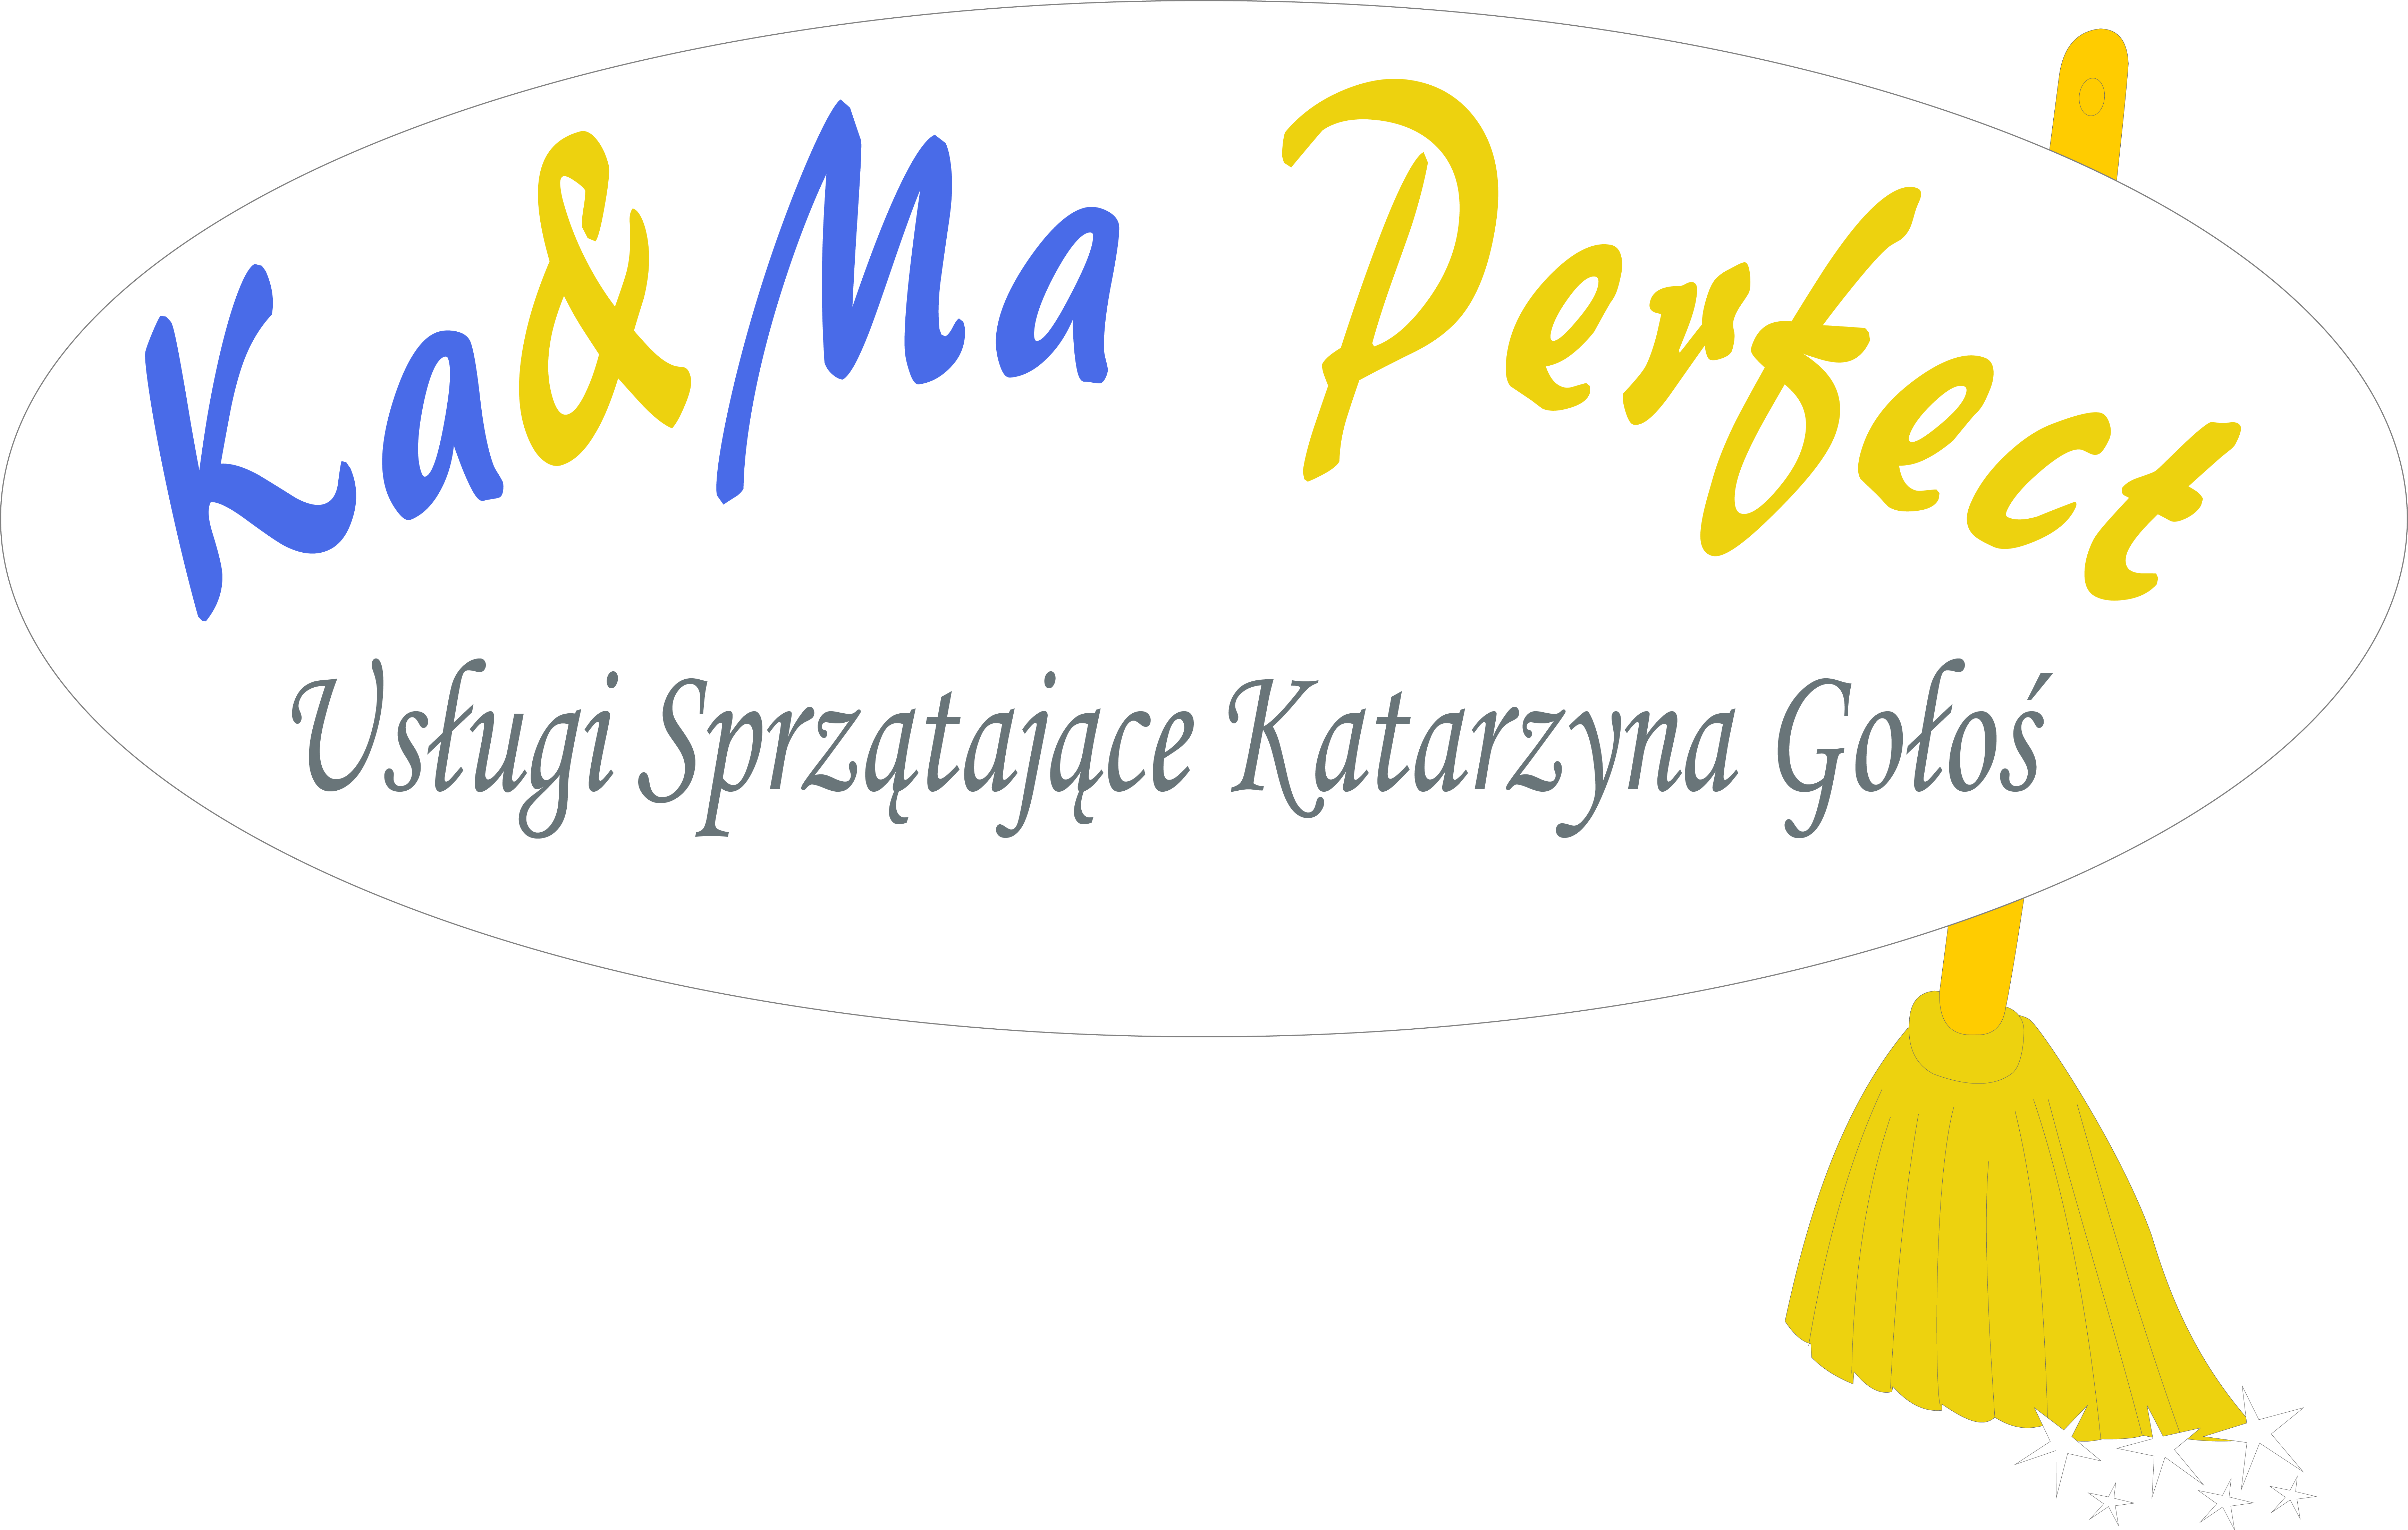 www.kamaperfect.pl